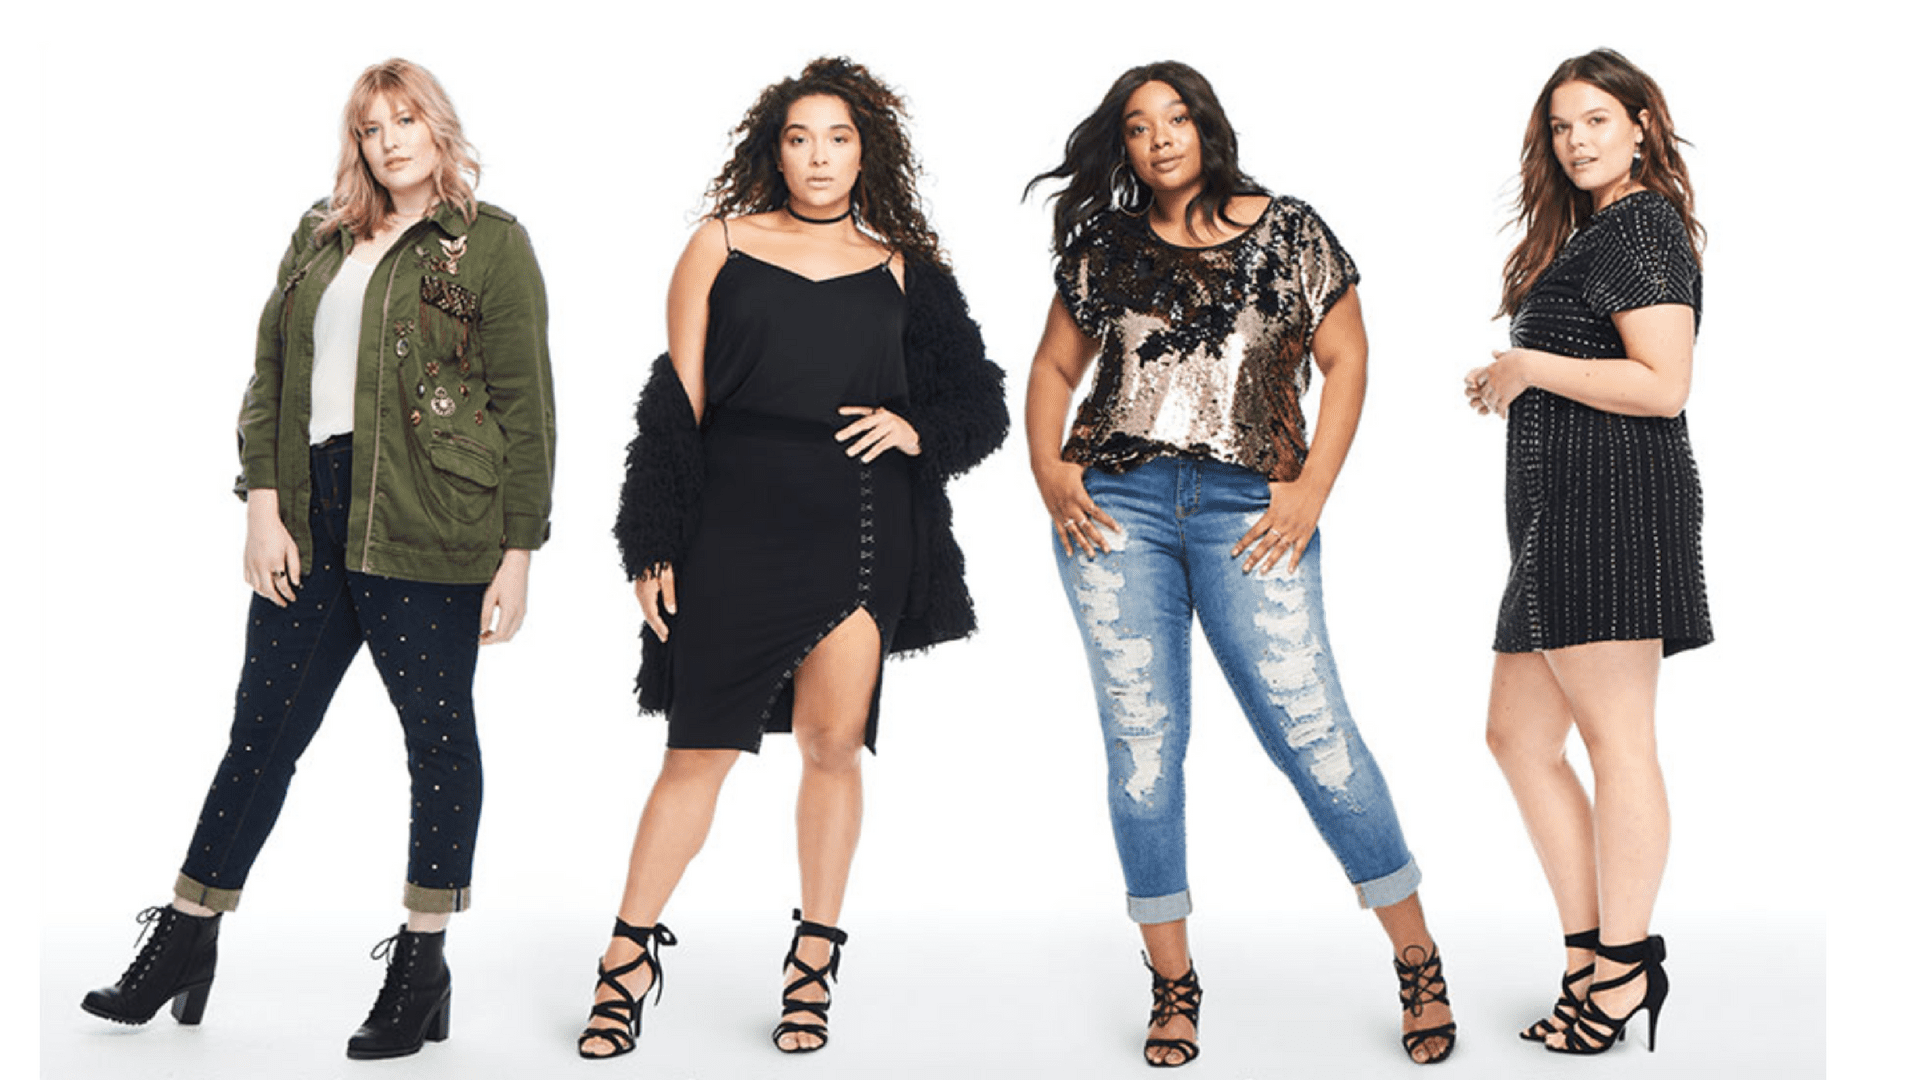 052e86284912 TORRID Unveils the Four Fabulous Finalists of its Model Search!